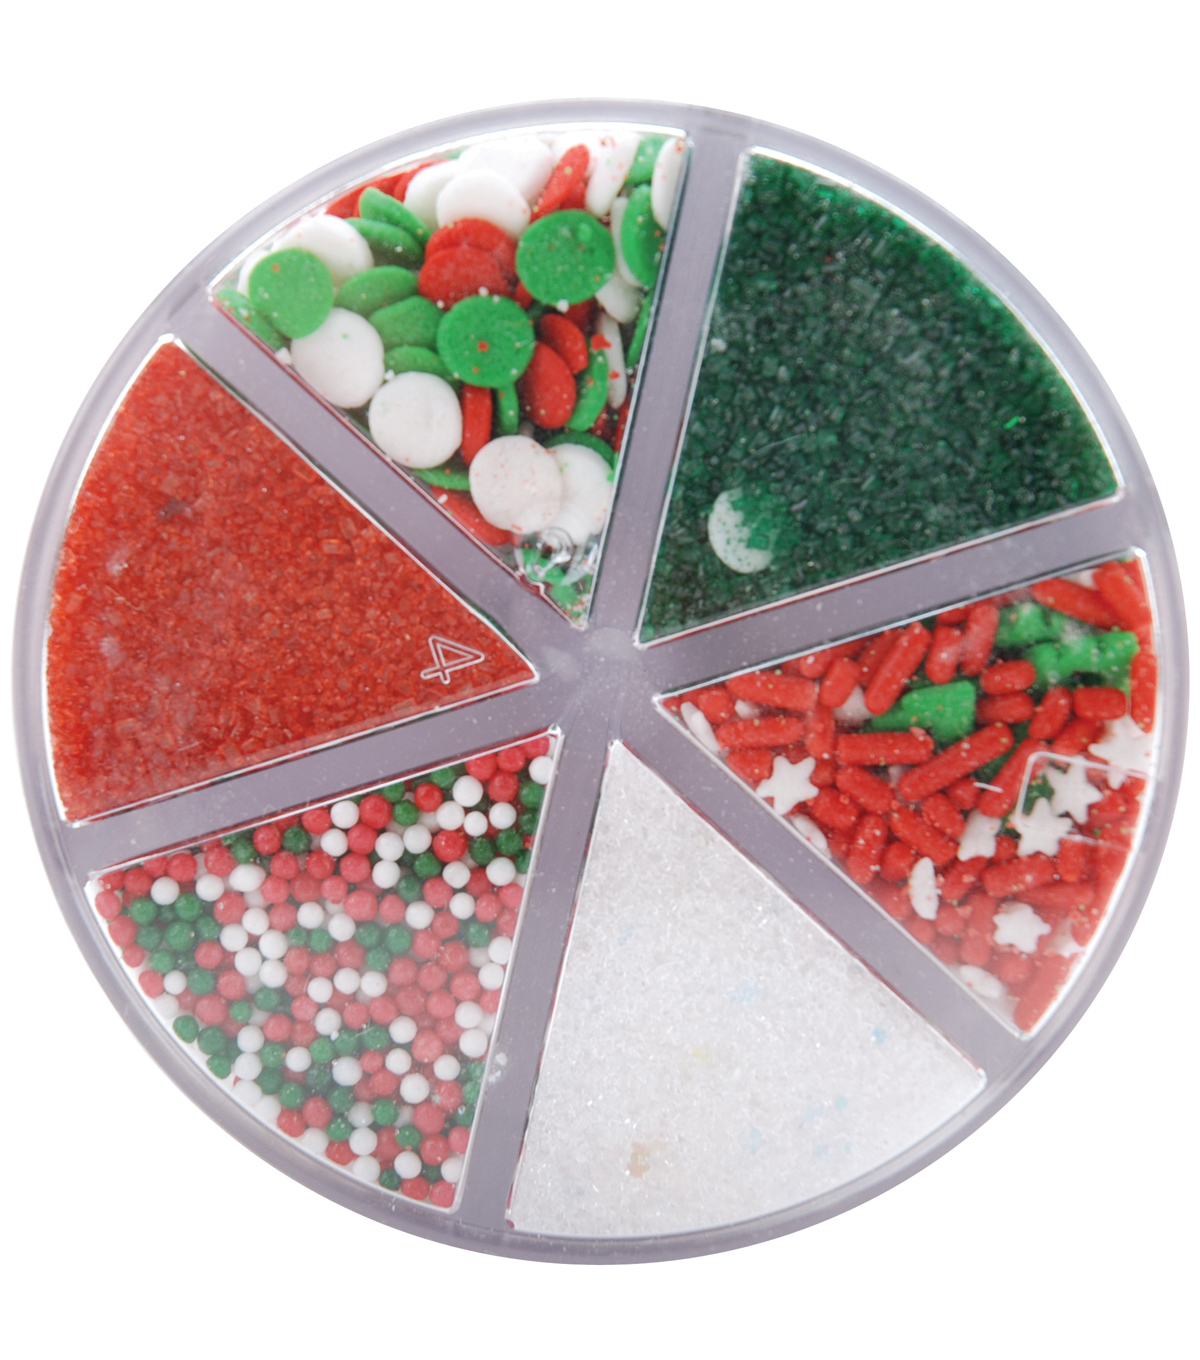 Wilton 6.8oz. Holiday Sprinkles Assortment